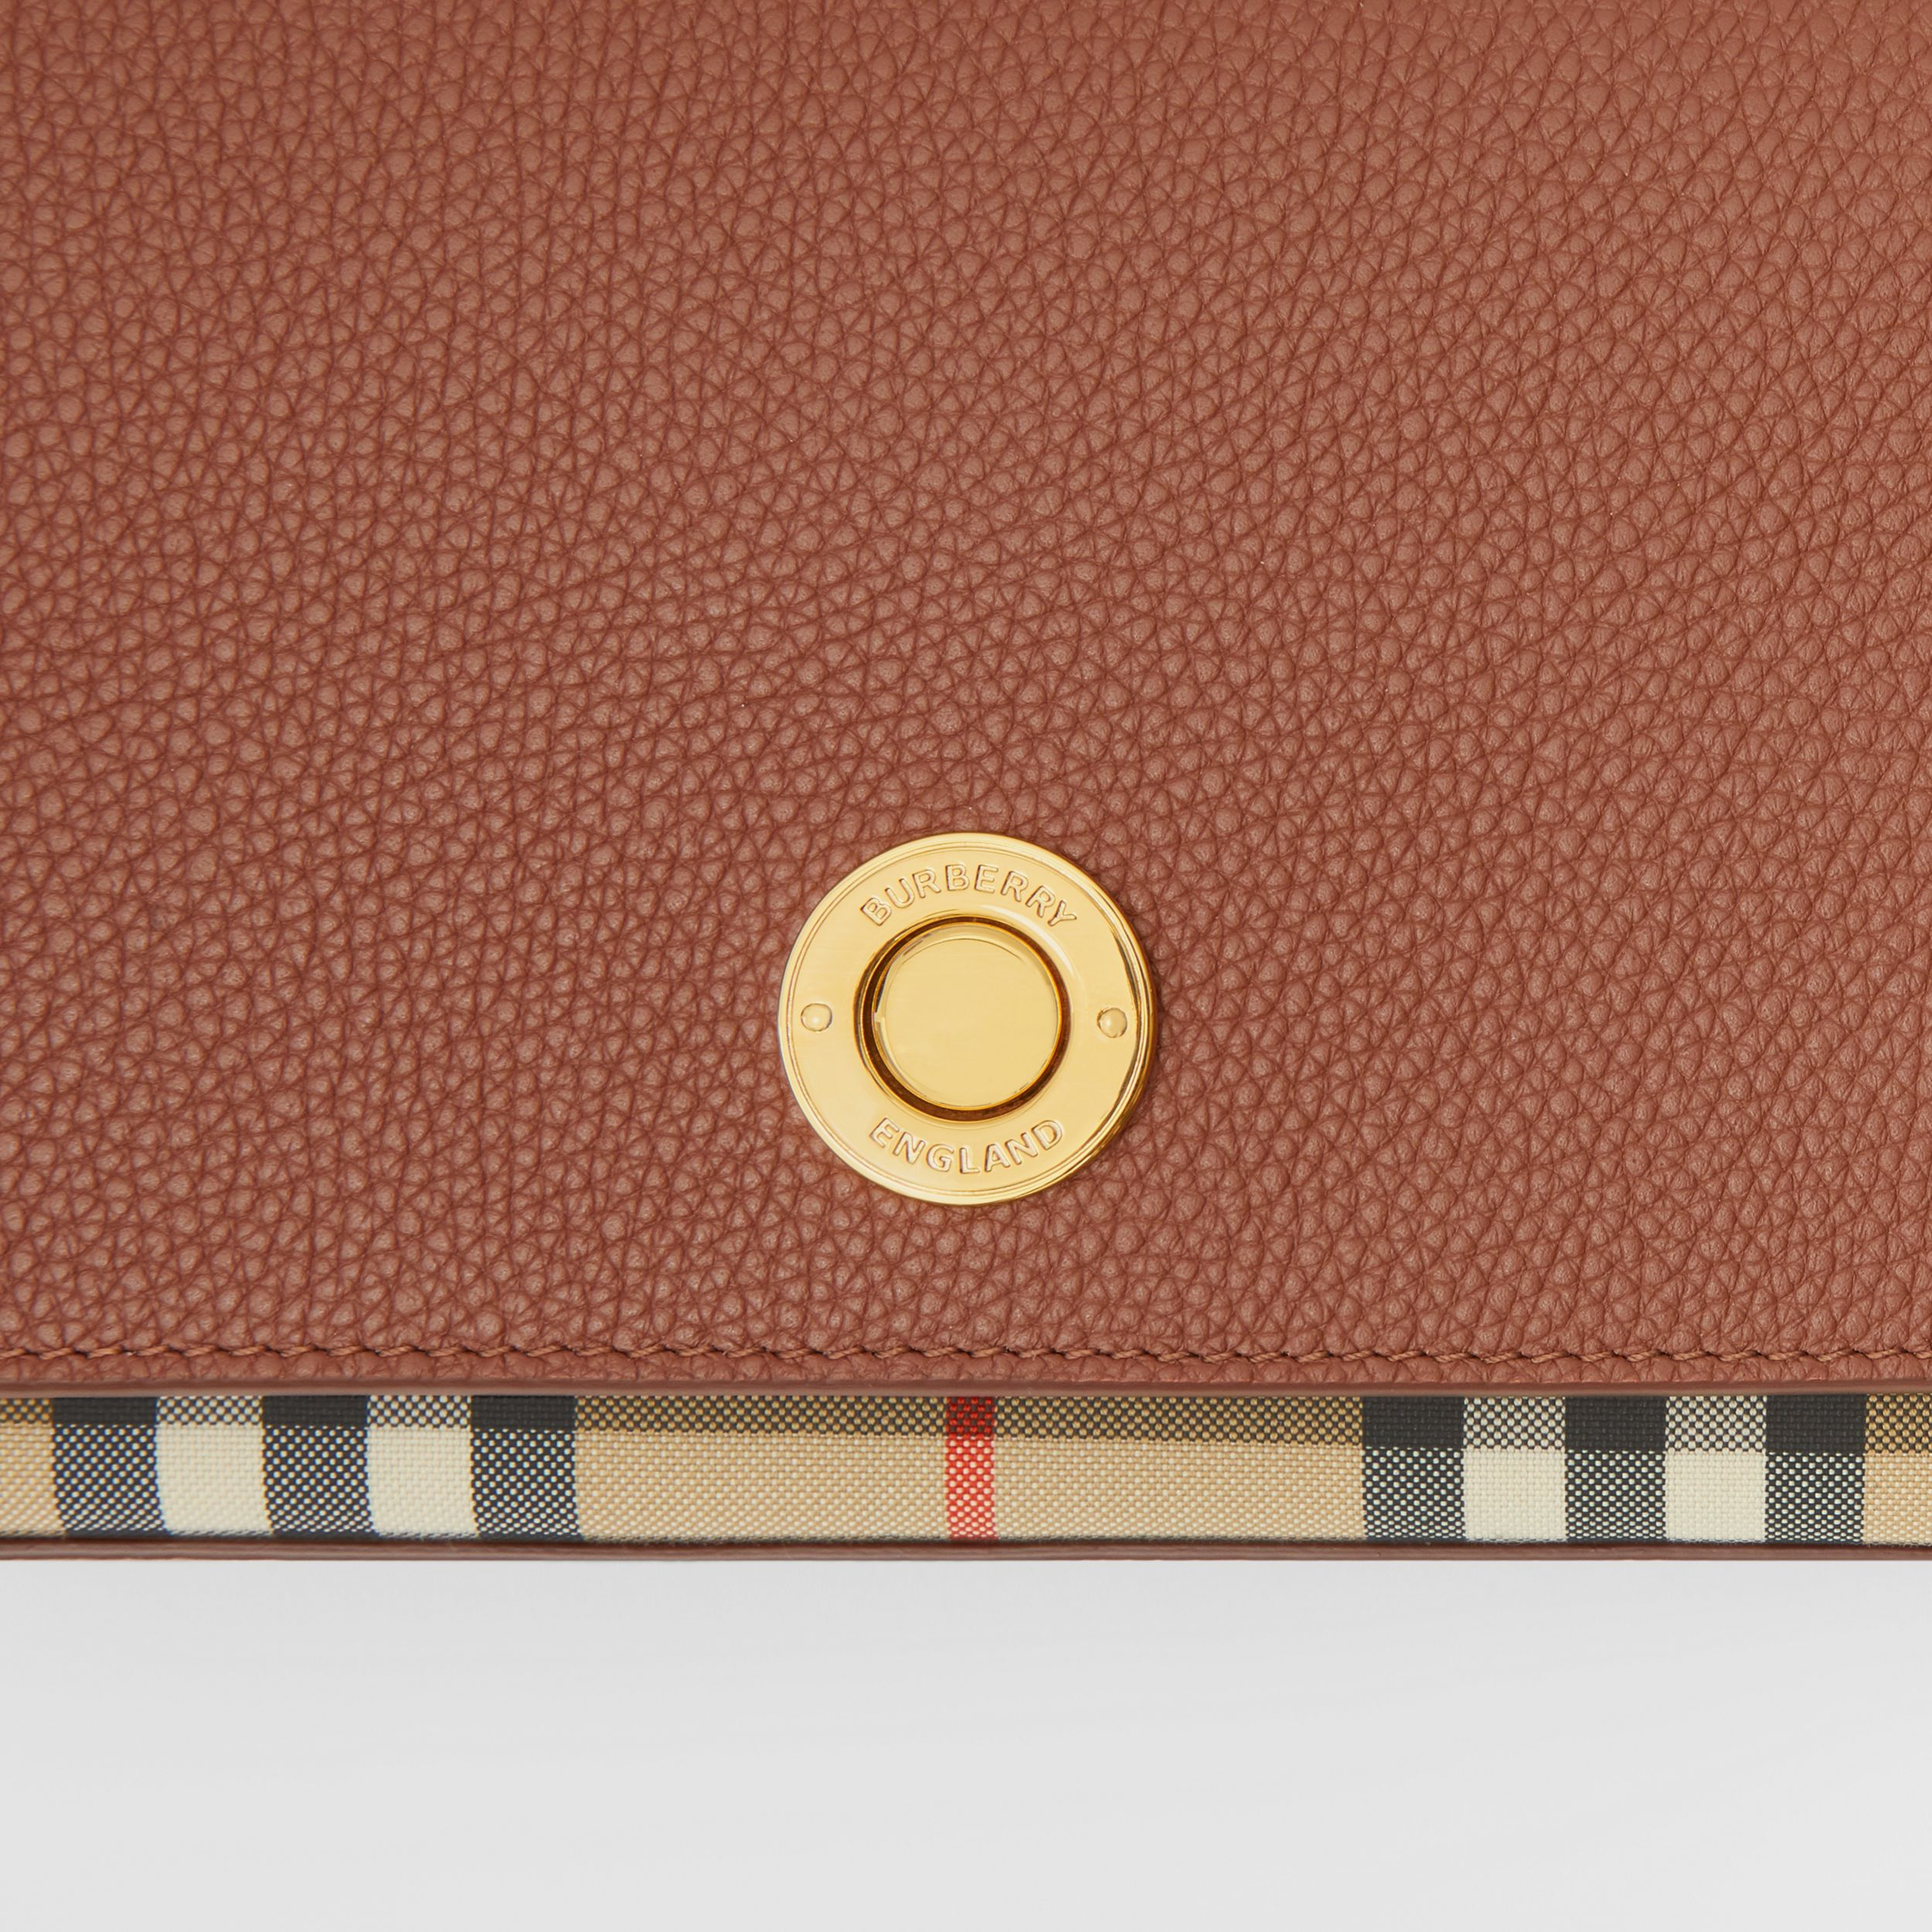 Small Leather and Vintage Check Crossbody Bag in Tan - Women | Burberry - 2